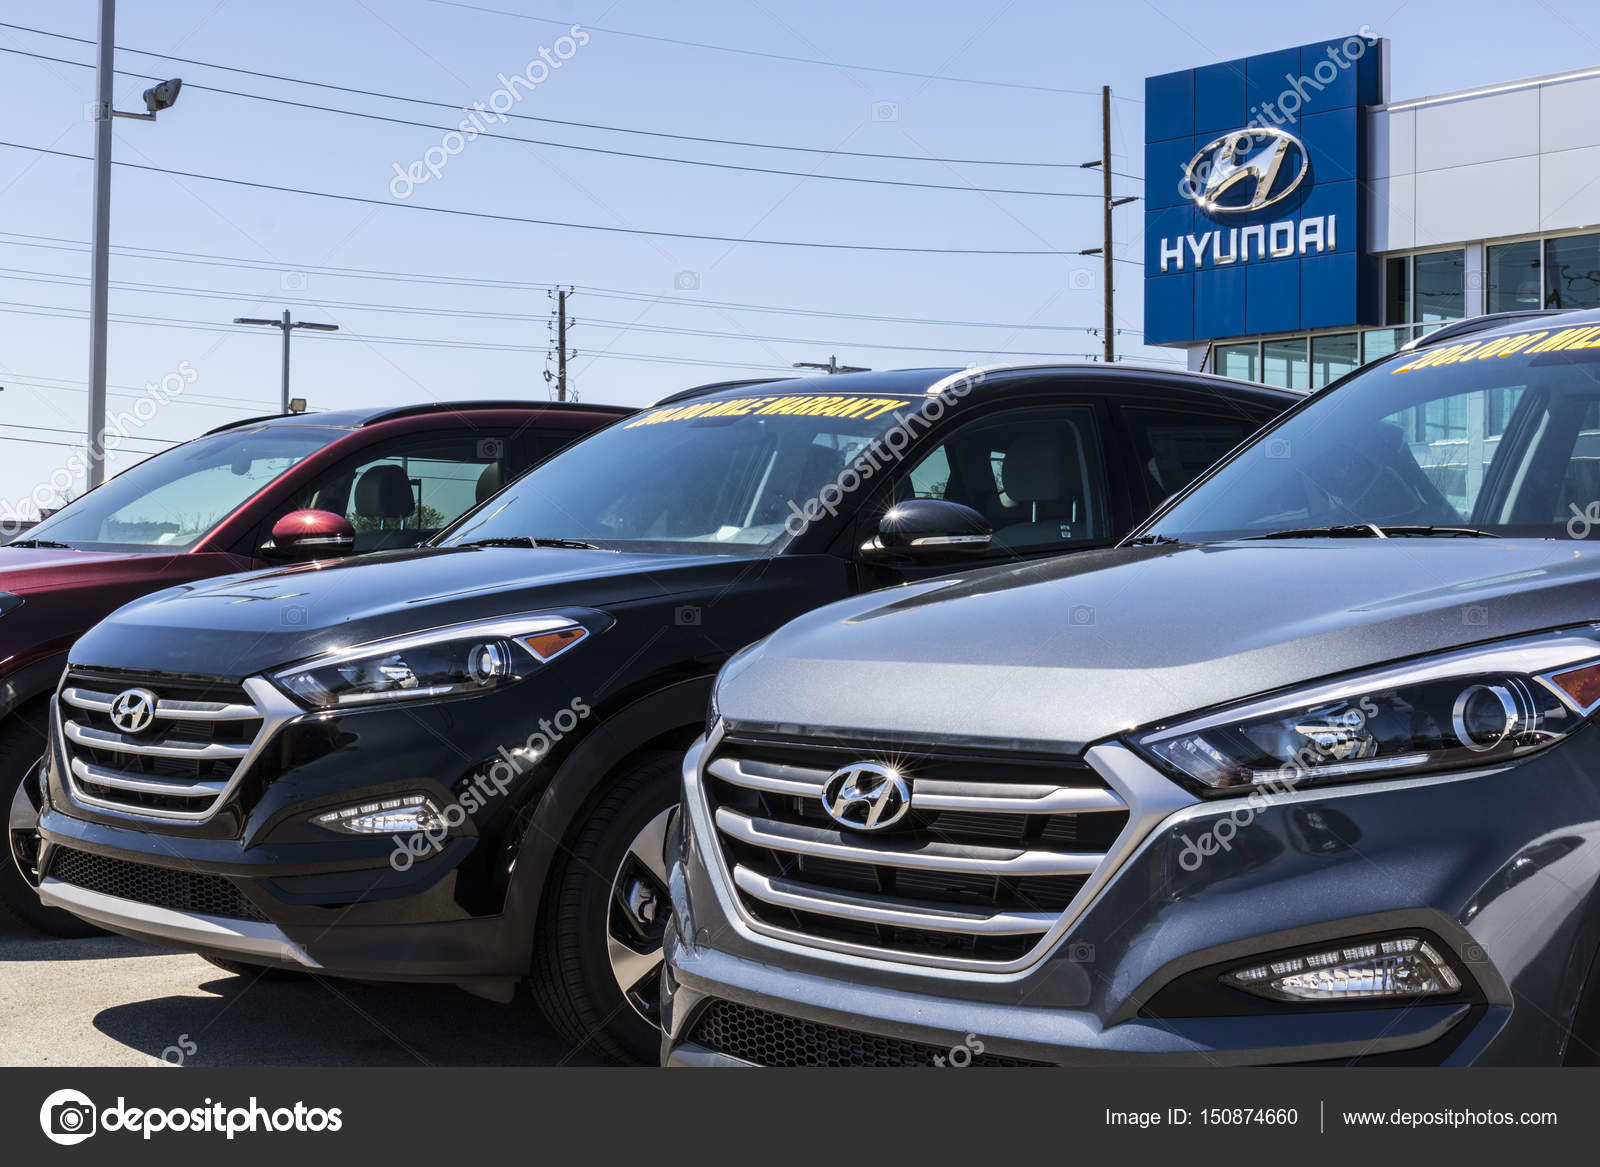 Hyundai Dealership Indianapolis >> Indianapolis Circa April 2017 Hyundai Motor Company Dealership